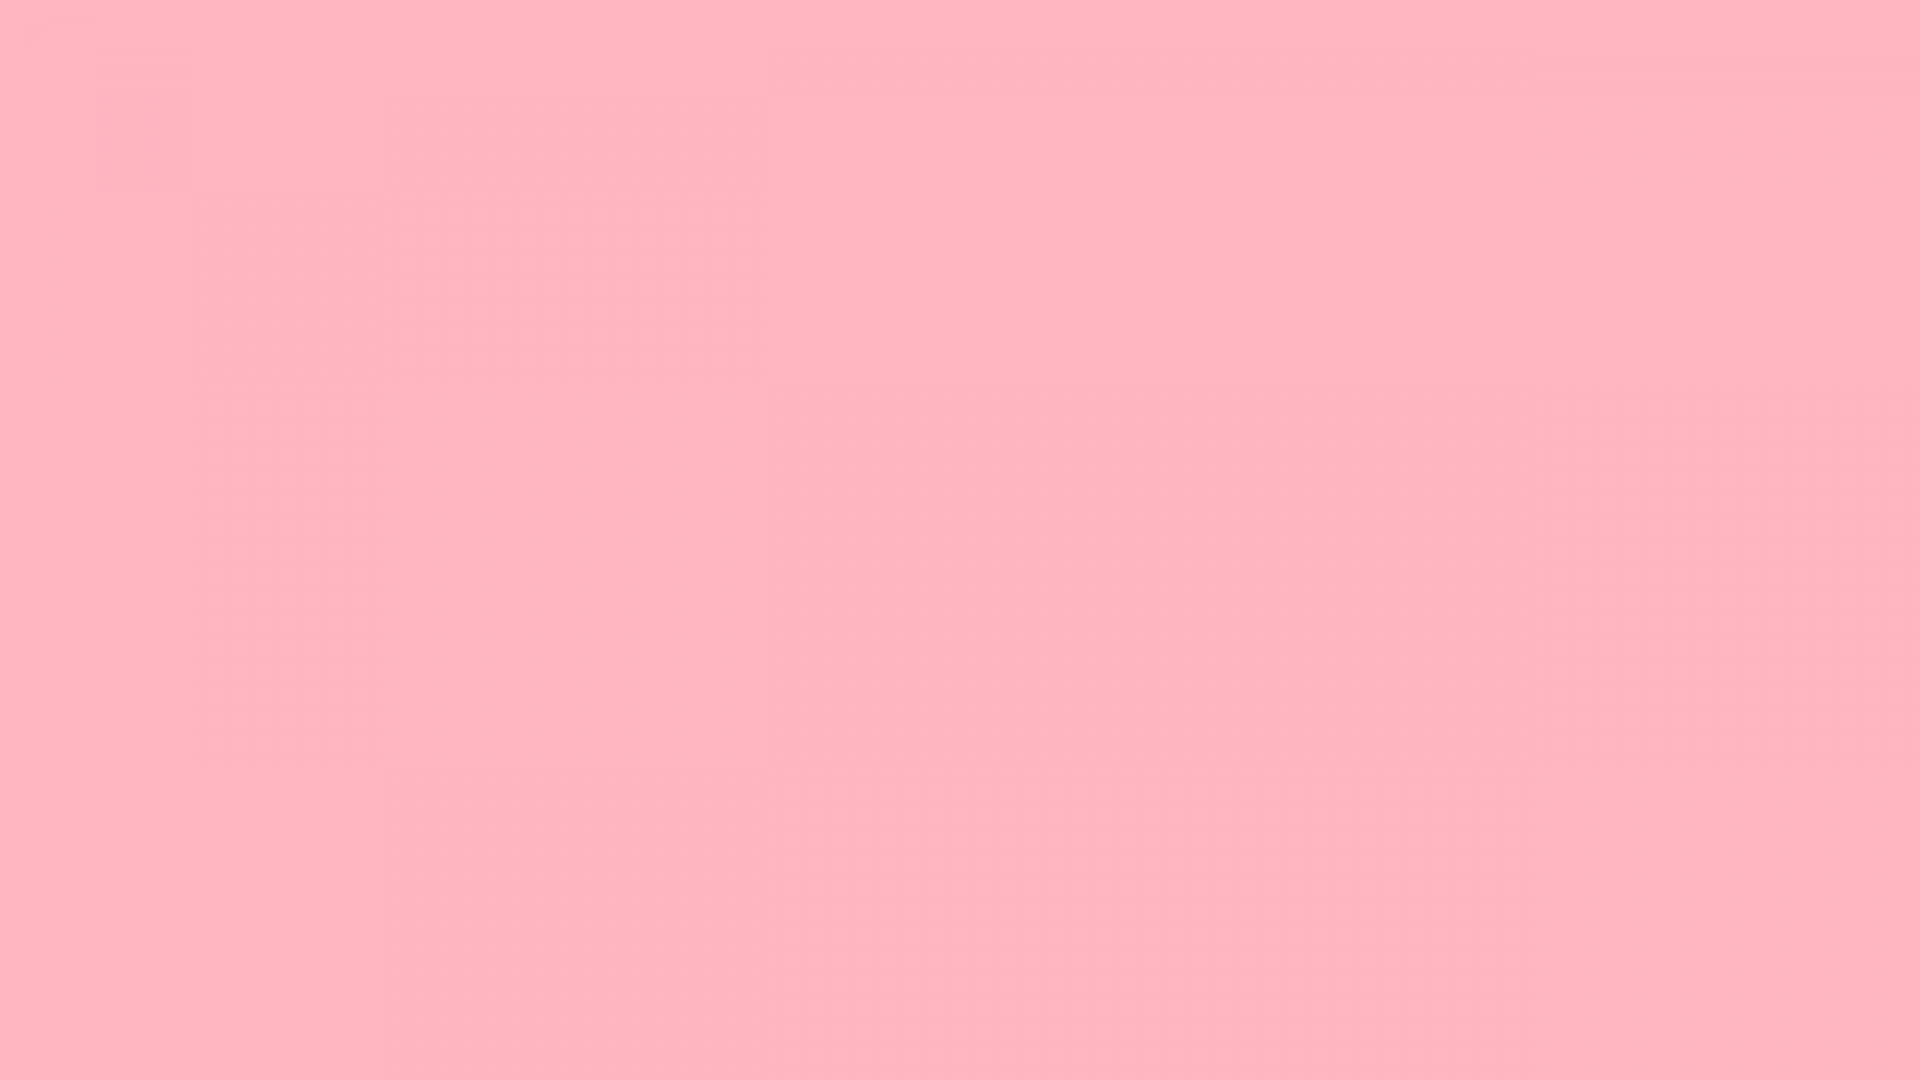 Free Download Tumblr Backgrounds Light Pink Hd Wallpapers On